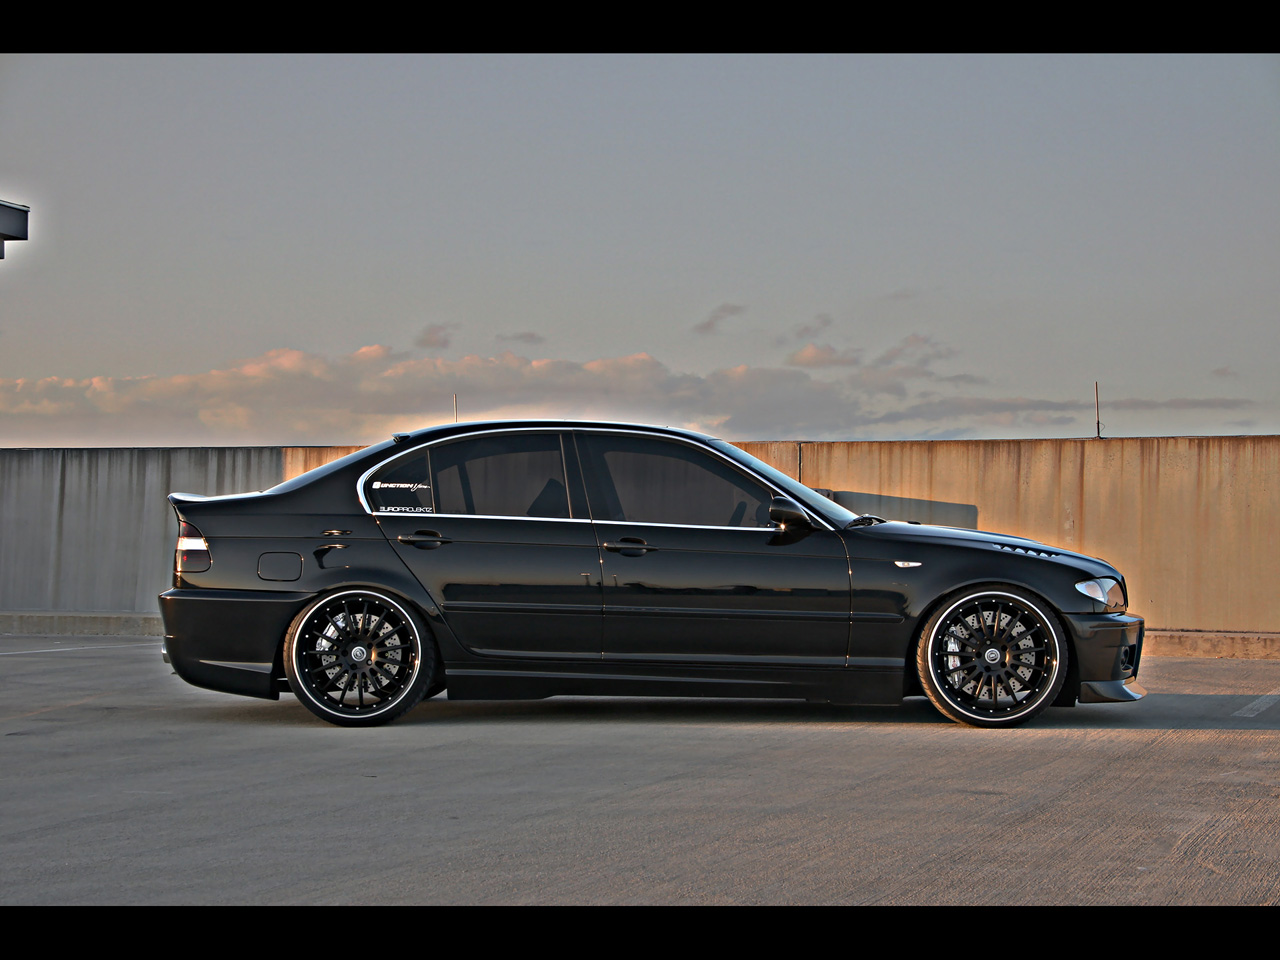 2004 BMW 330i ZHP Europrojektz DarXide - Side - 1280x960 - Wallpaper